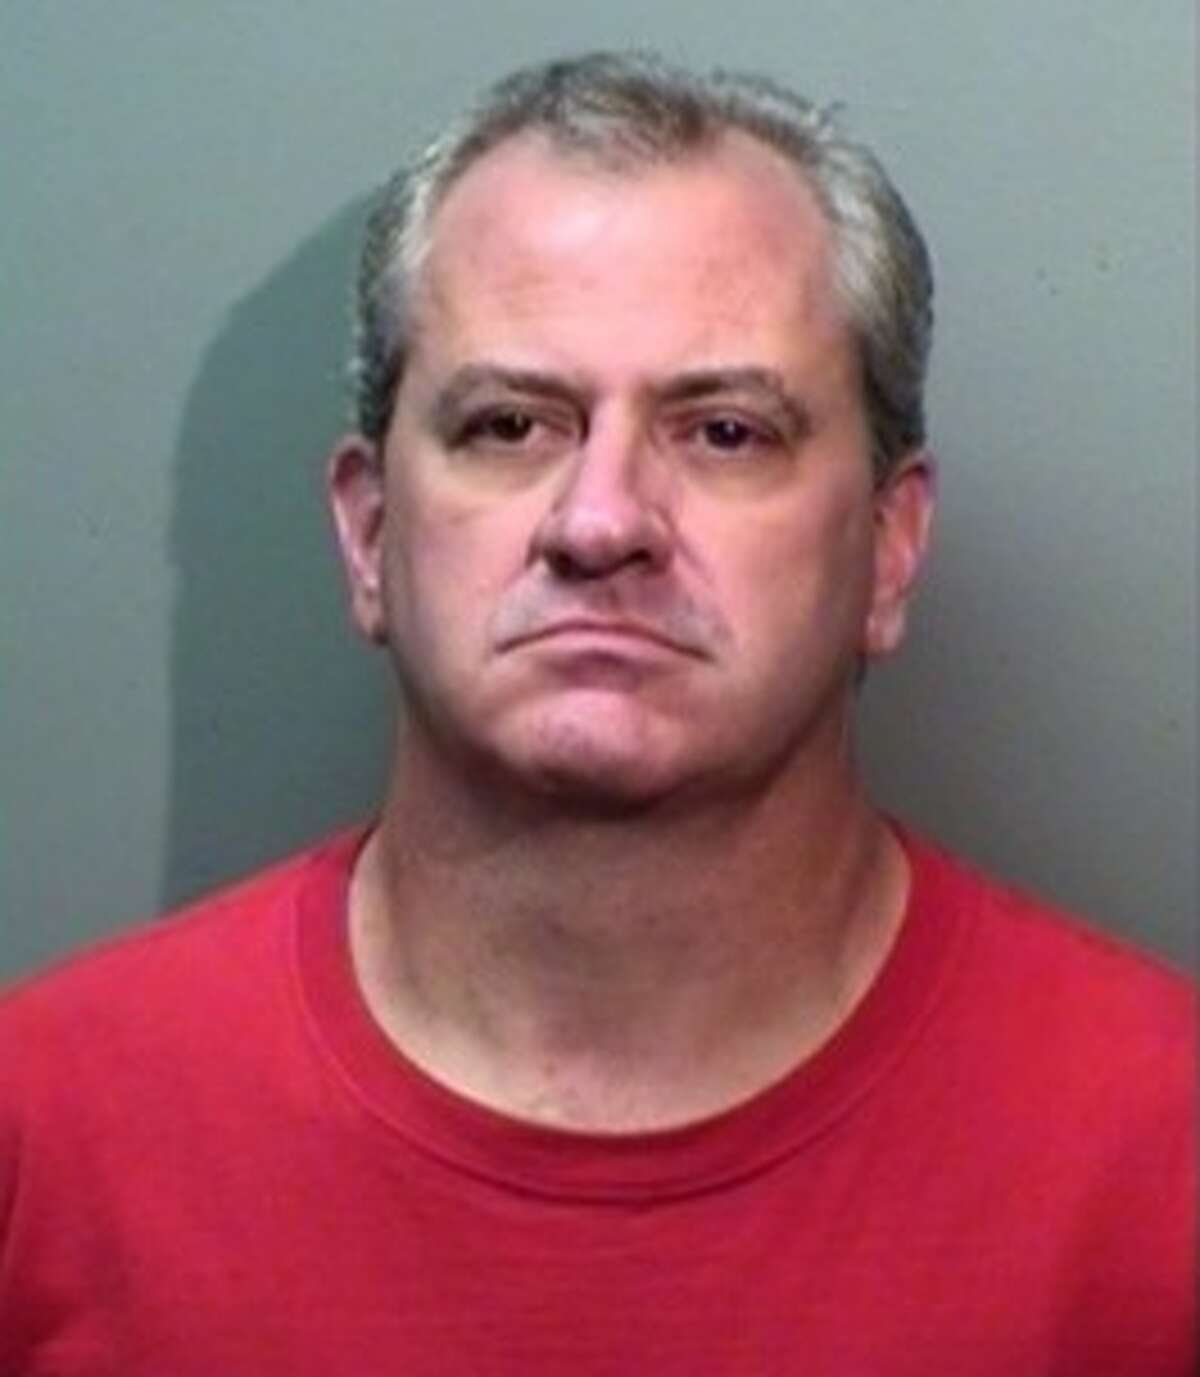 Kenneth E. Baker, 50, is accused of killing his mother, Margret Shelton, 85, by suffocation on Aug. 30, 2016. He admitted to killing Shelton and her dog. Click through the slides to see serial killers who operated in Texas.